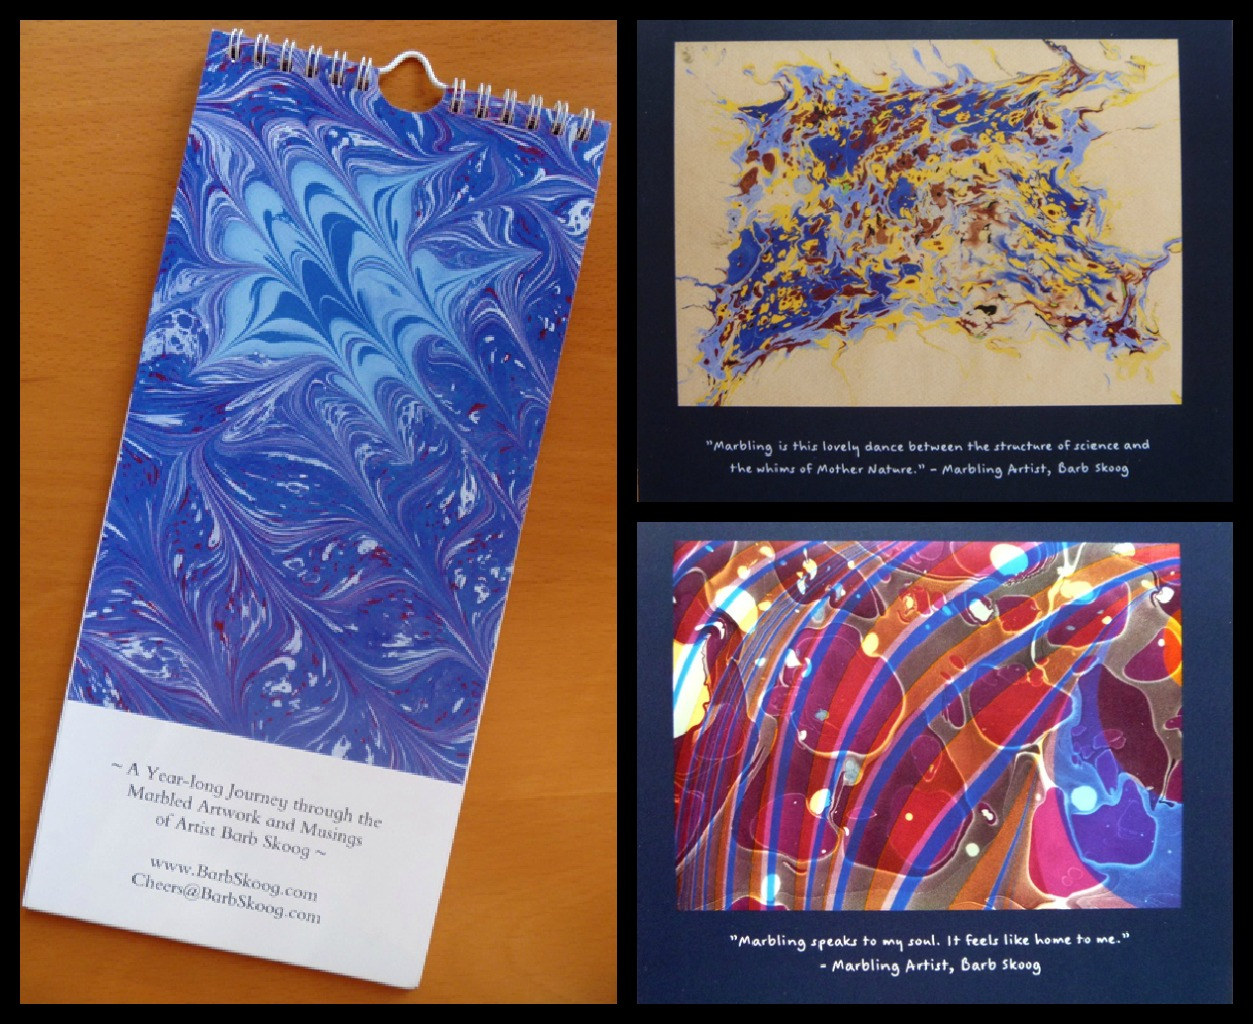 A year-long journey through the marbled artwork and mustings of artist Barb Skoog.